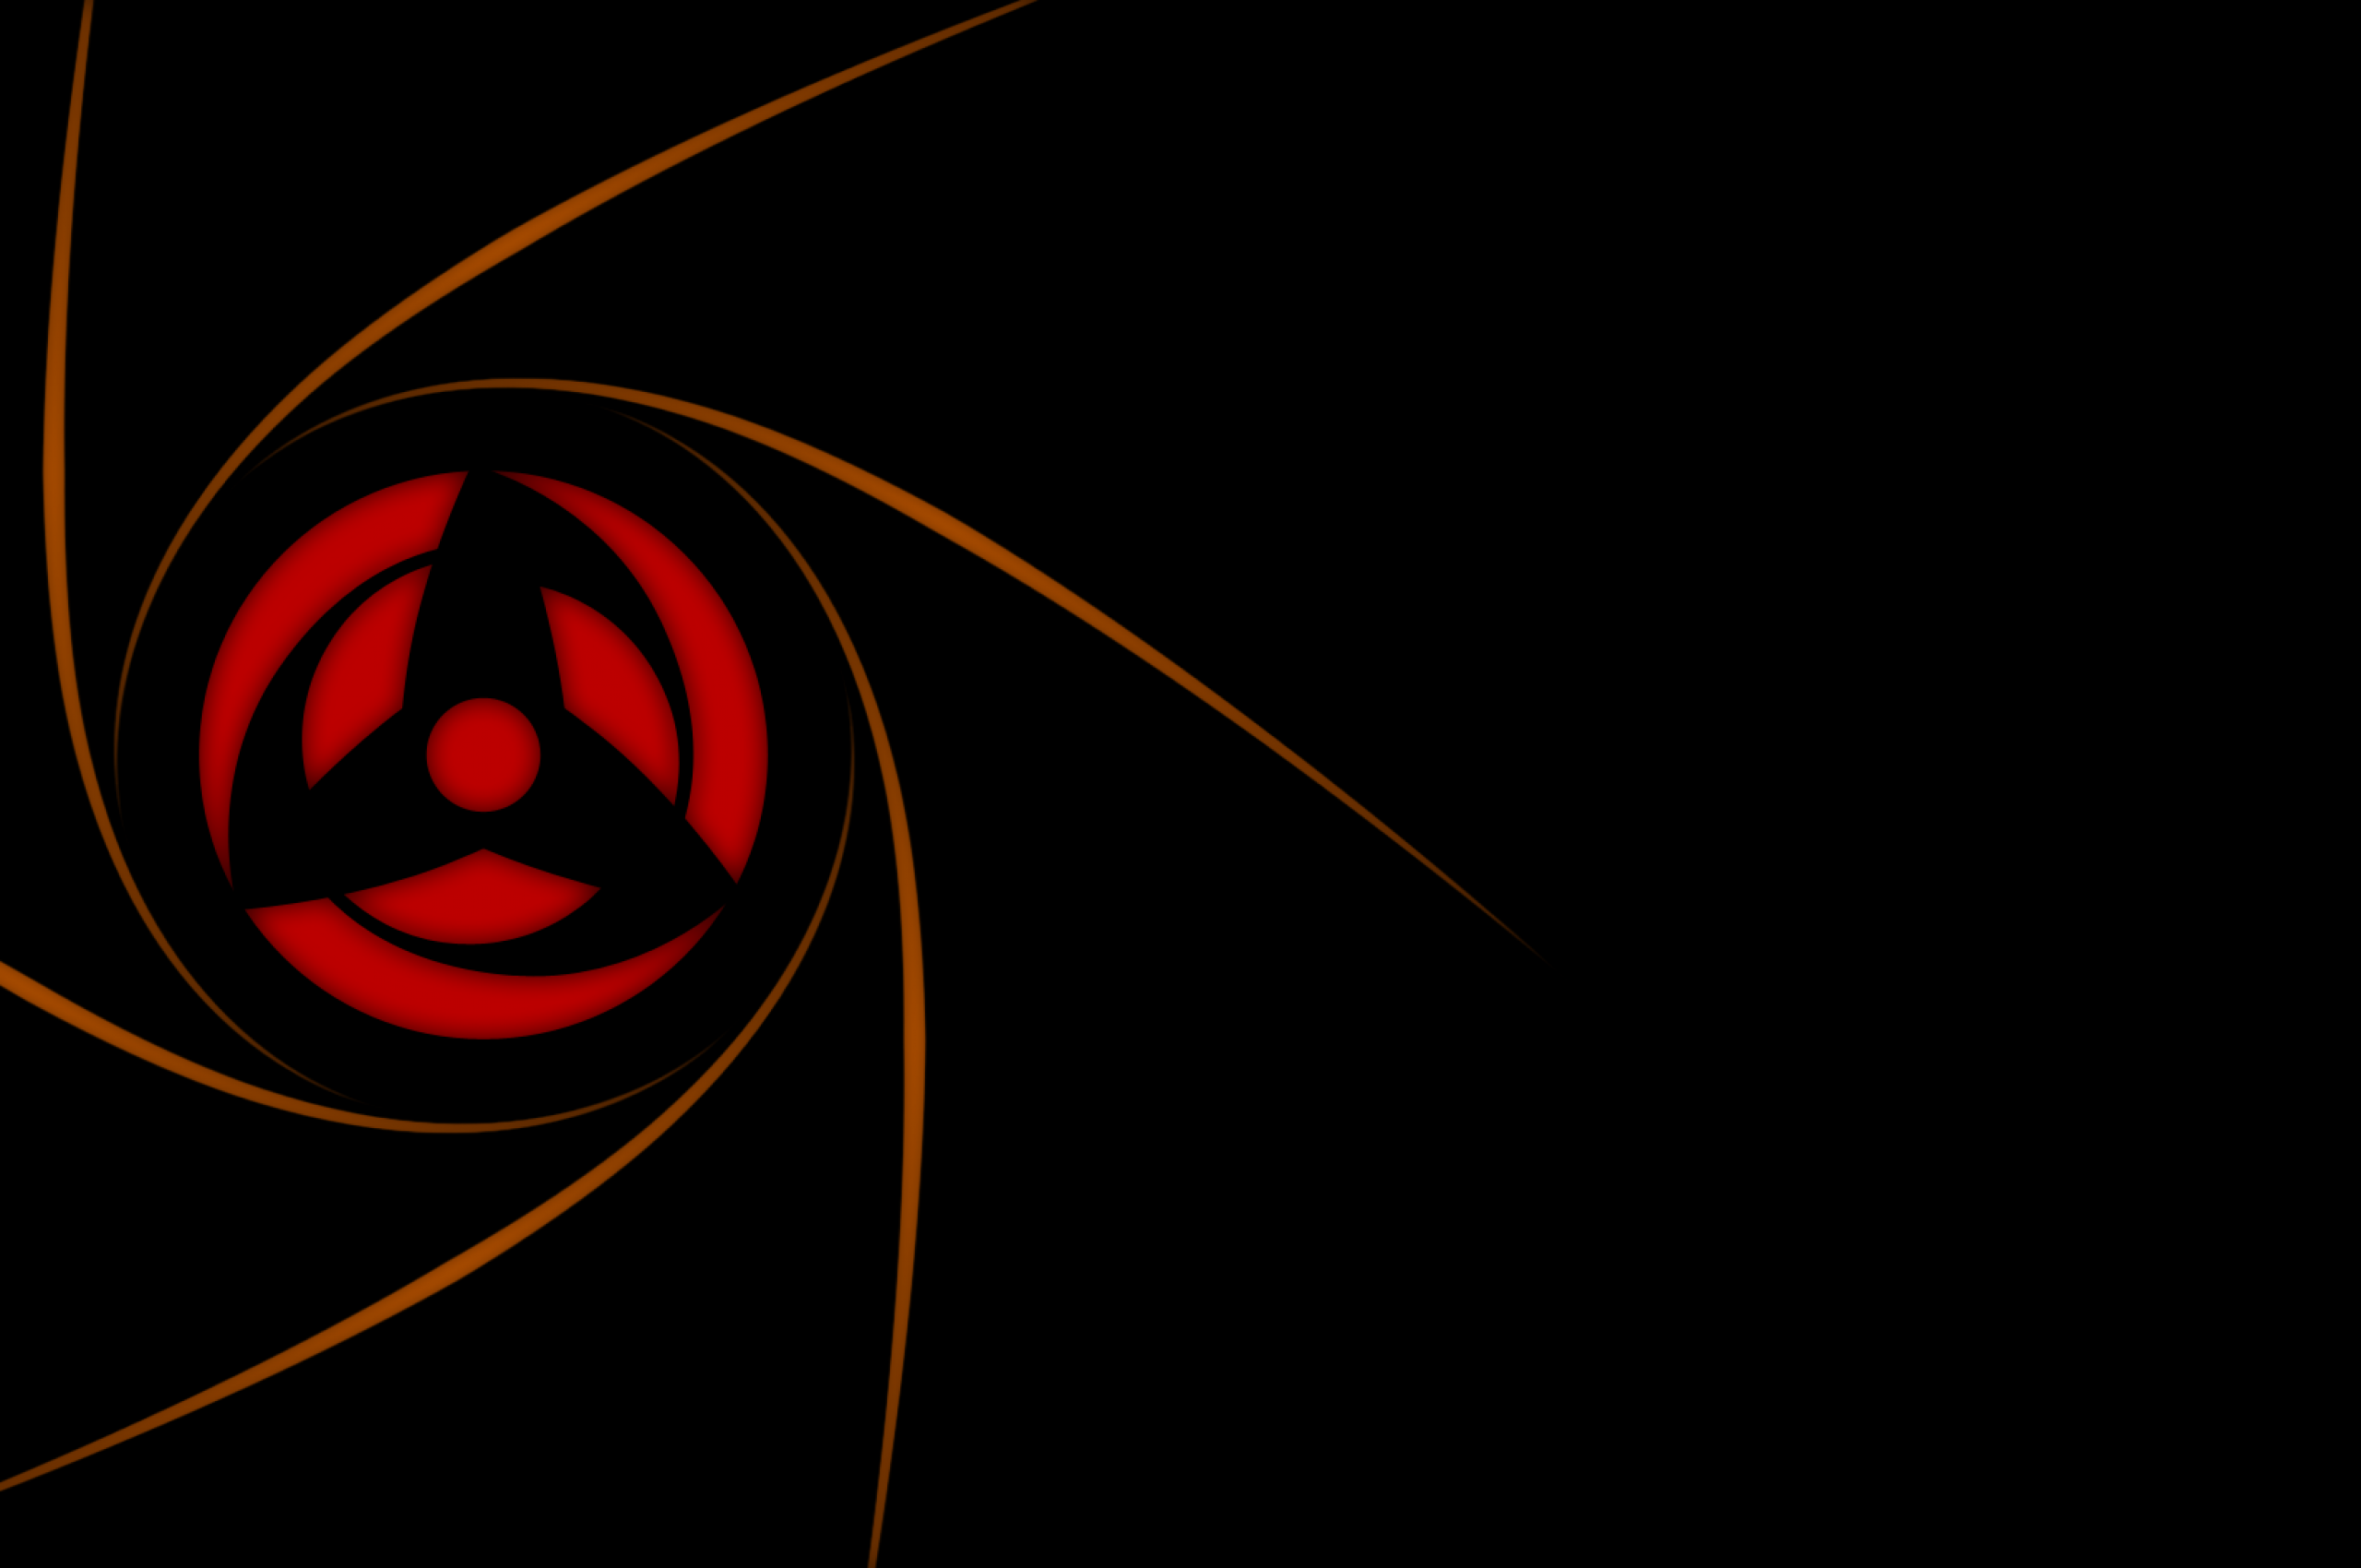 Download 2560x1700 Sharingan Obito Naruto Wallpapers for 2560x1700